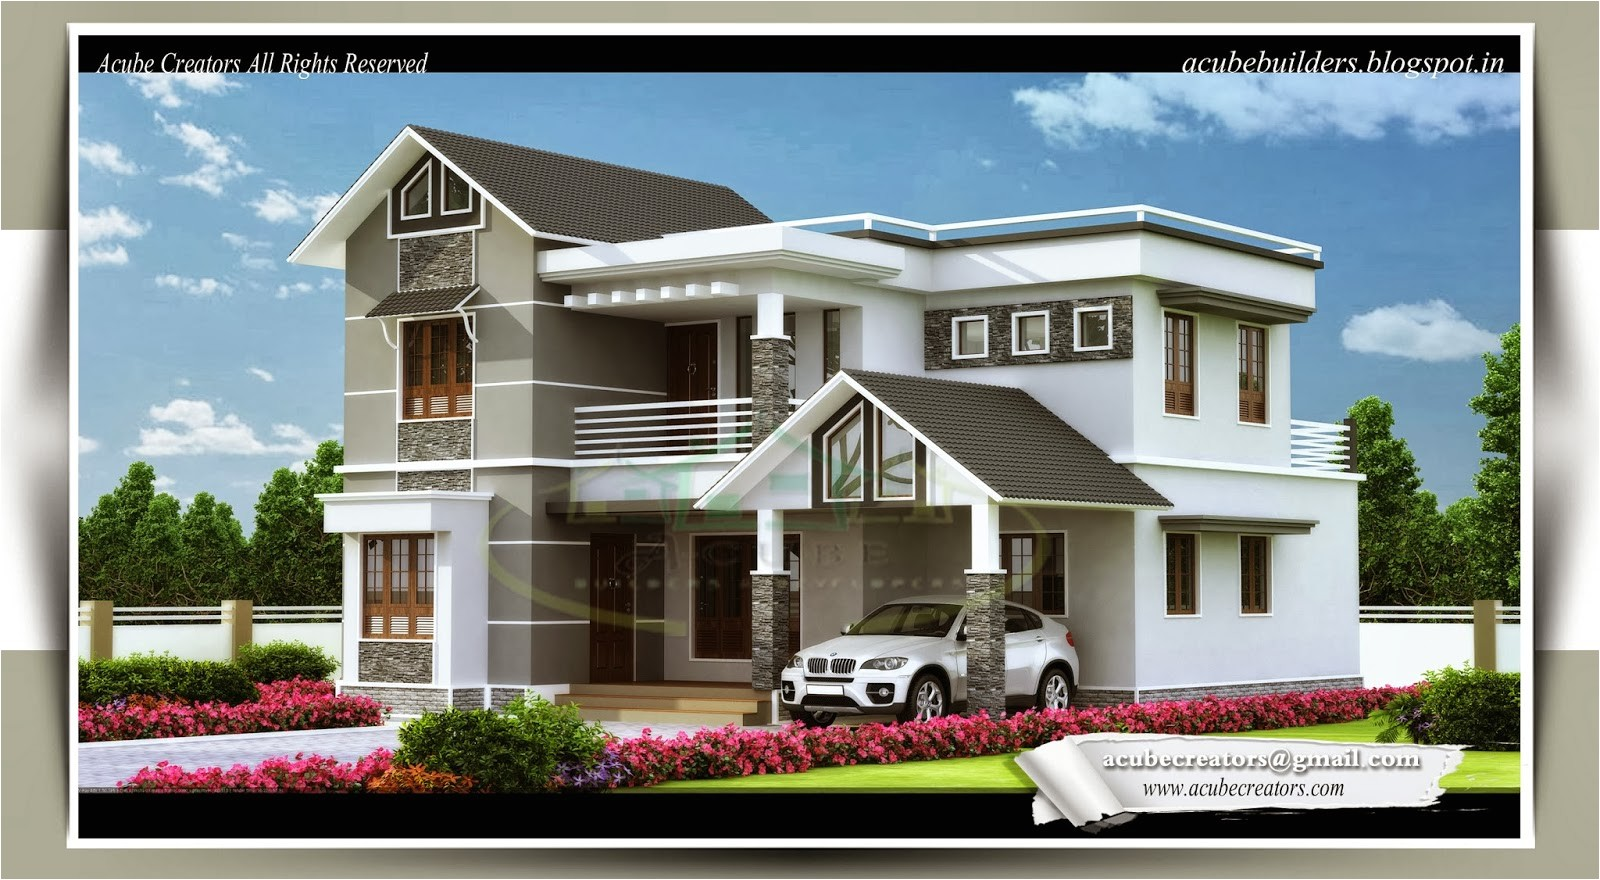 romantic home design gallery fresh ideas kerala photos on images